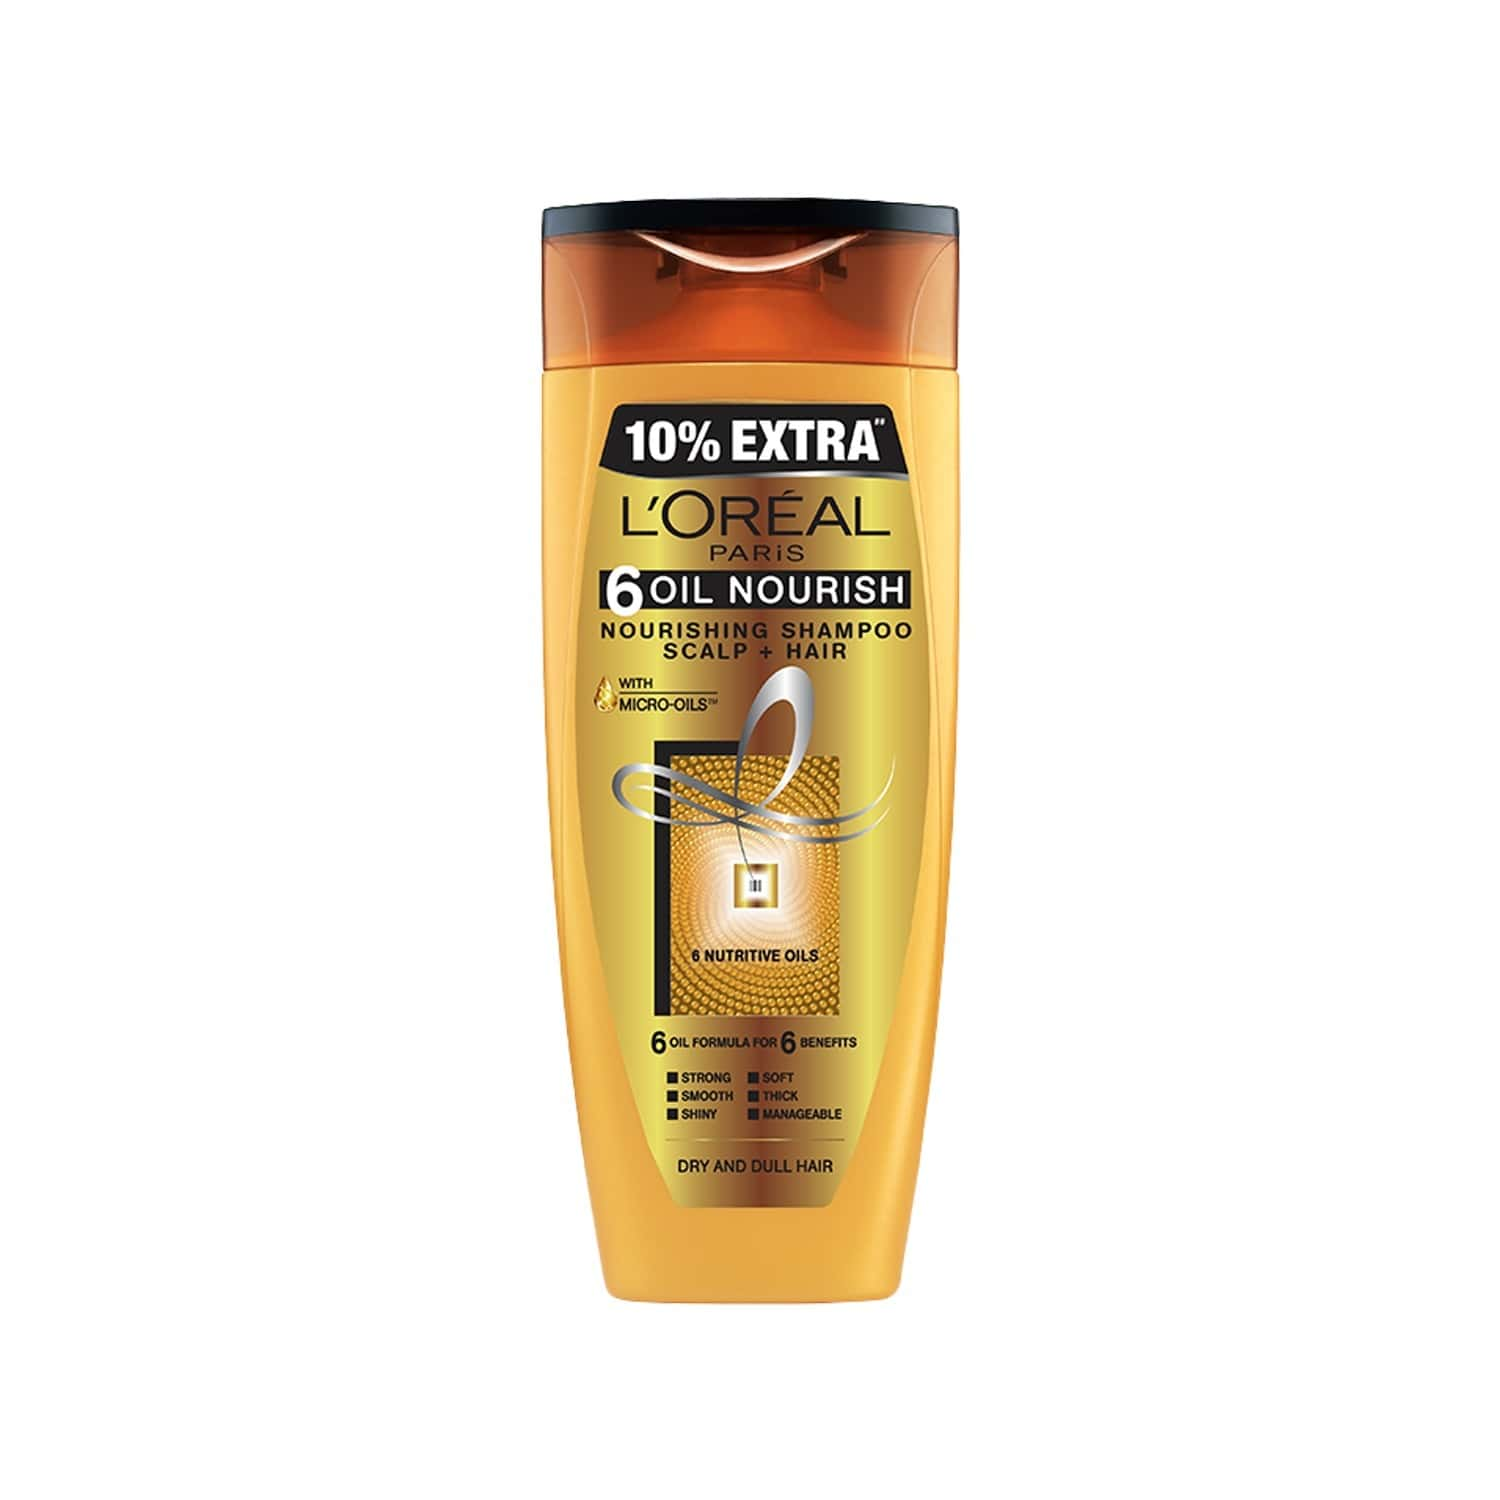 L'oreal Paris 6 Oil Nourish Shampoo Bottle Of 360 Ml (with 10% Extra)